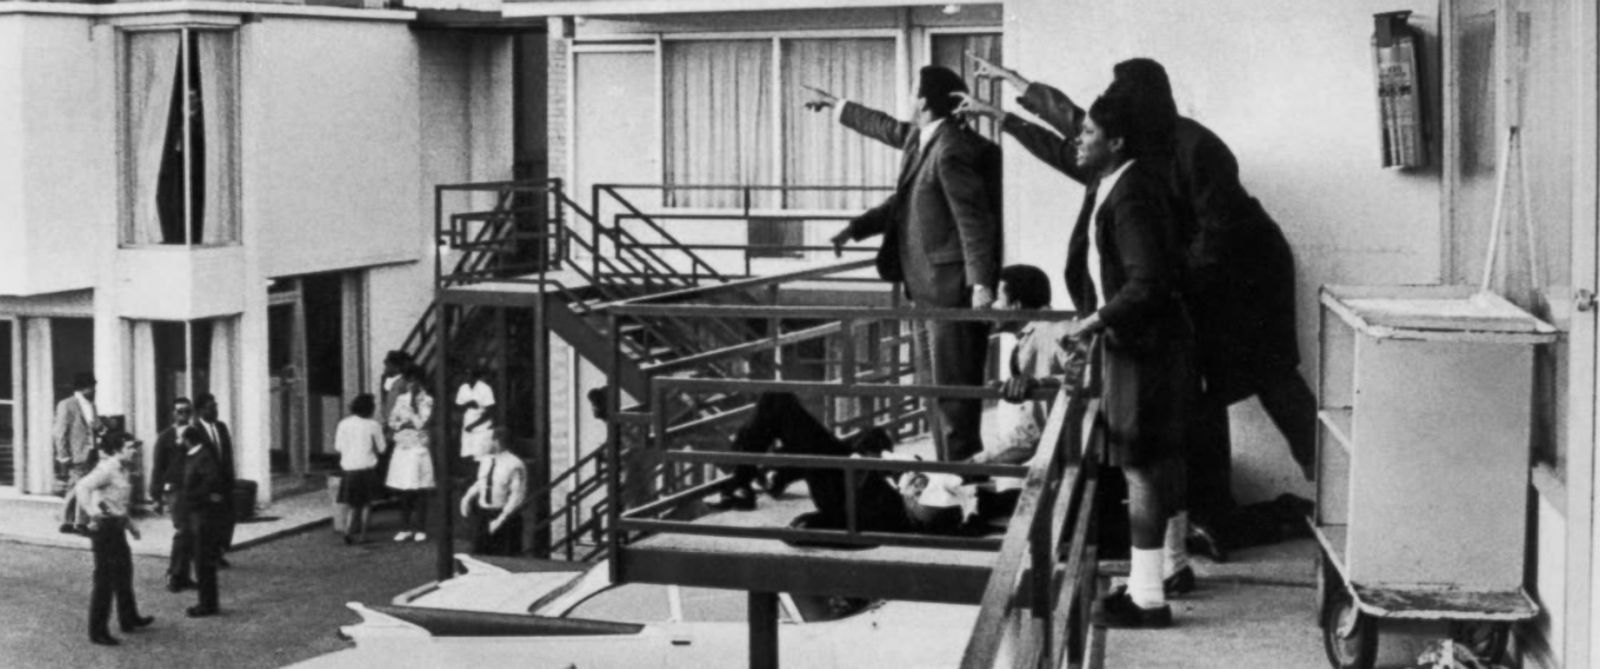 Martin Luther King, Jr. was assassinated on April 4, 1968, at the Lorraine Motel in Memphis, Tennessee.